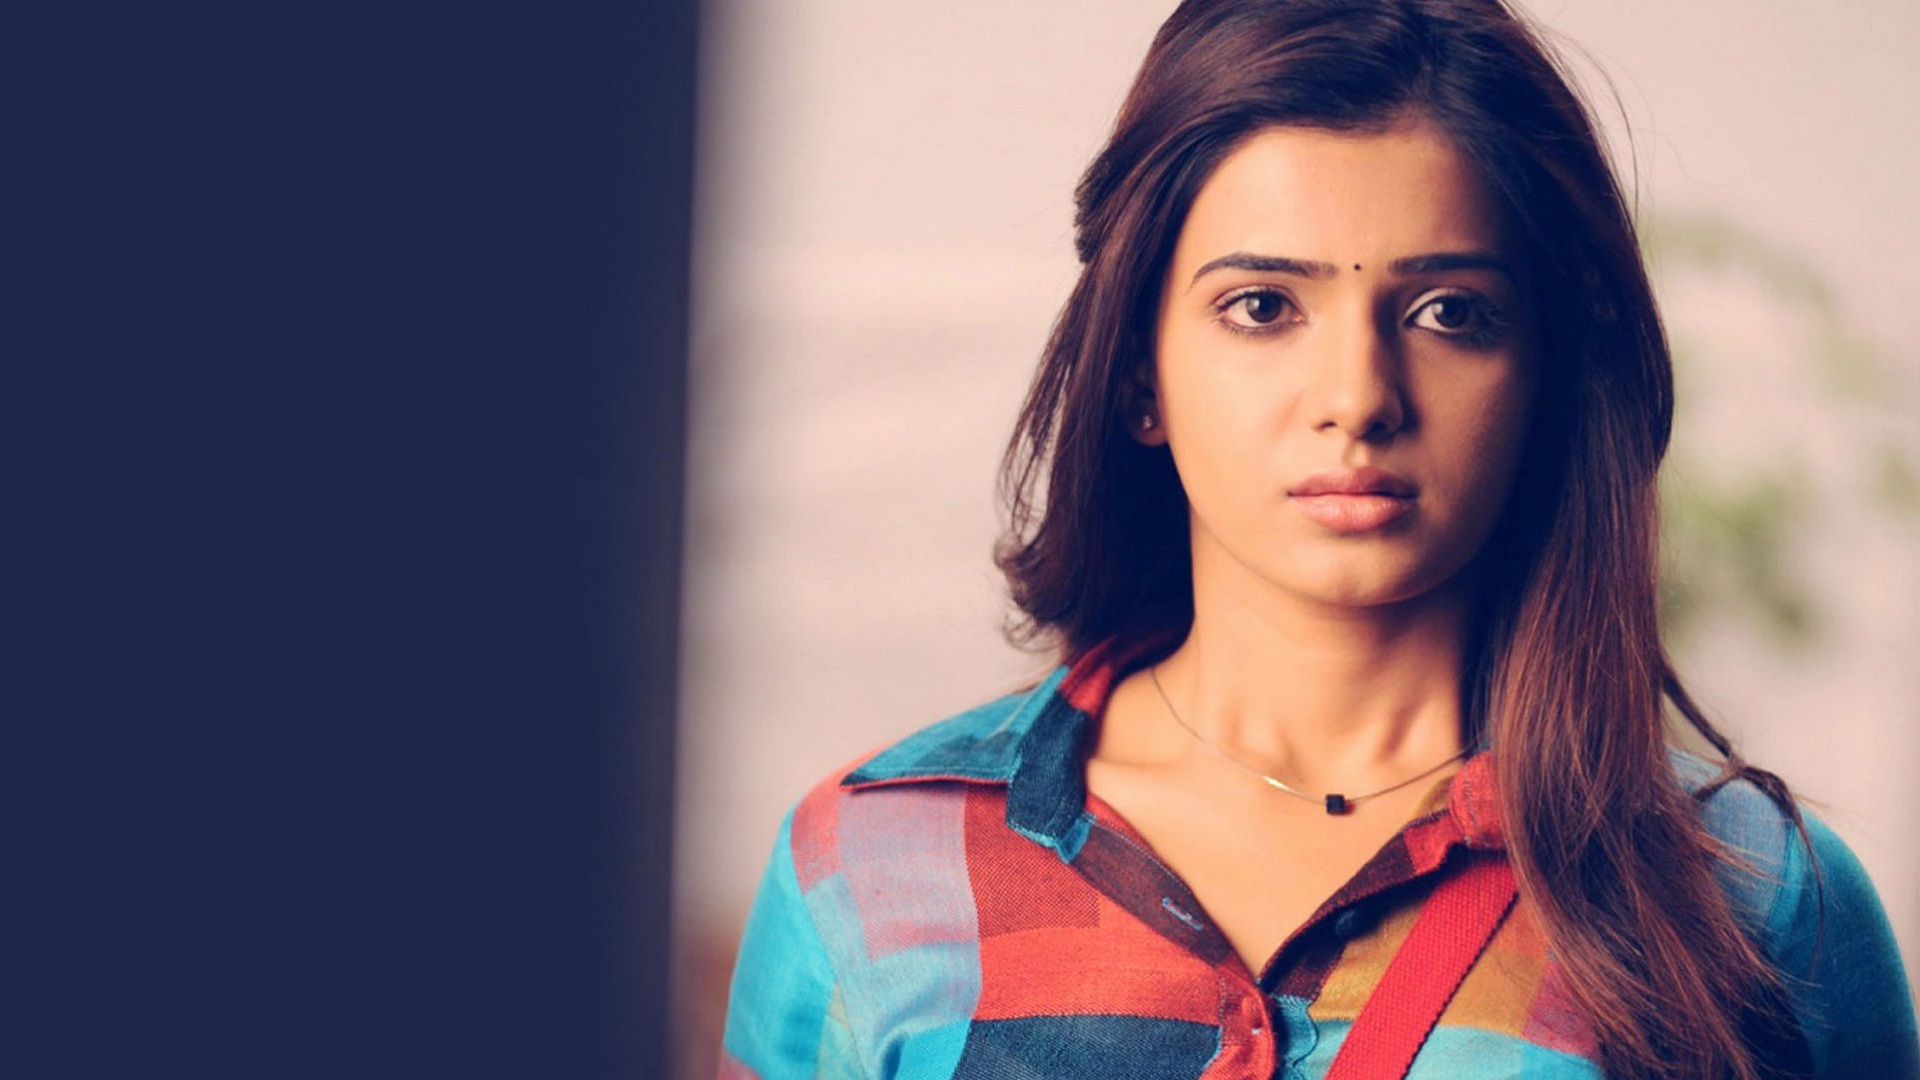 Samantha Hd Wallpapers: Download Samantha HD Wallpapers Download Gallery